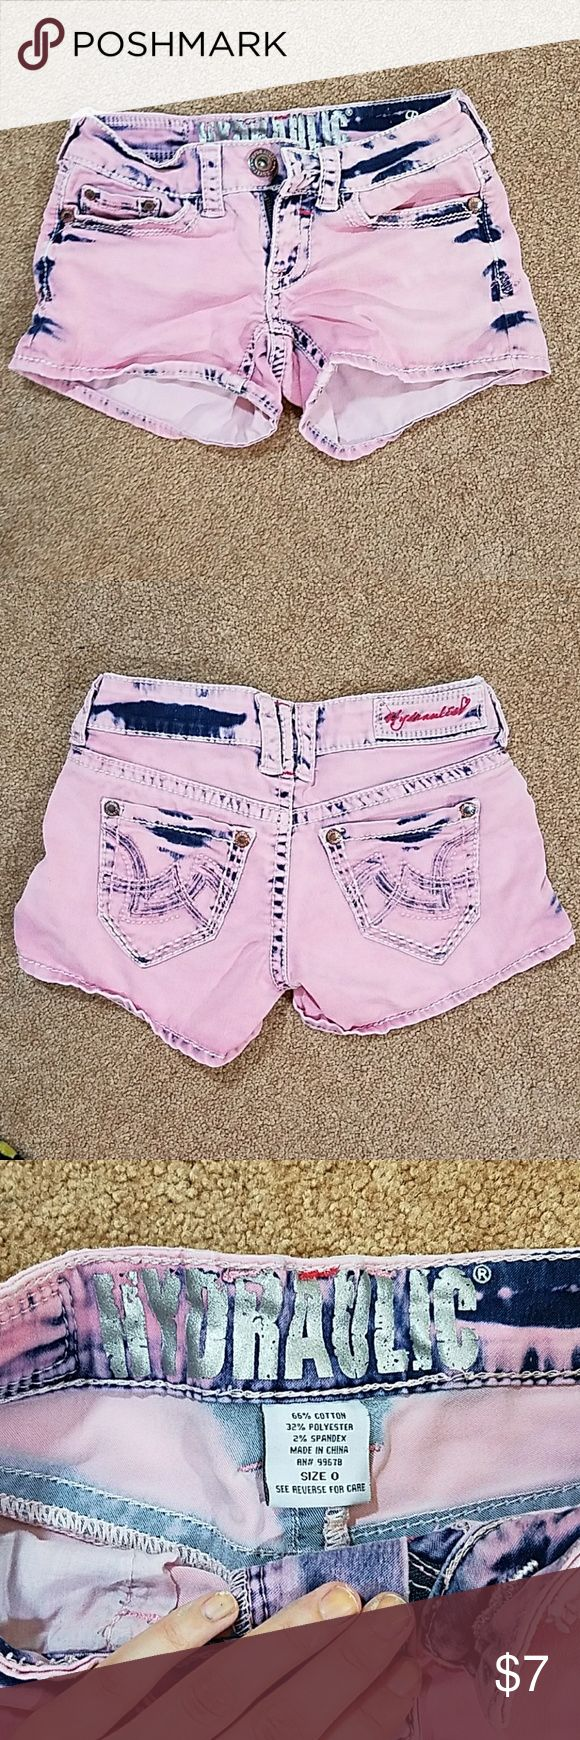 Hydraulic Bailey pink acid wash shorts No stains, rips or pilling. Size 0 Hydraulic Shorts